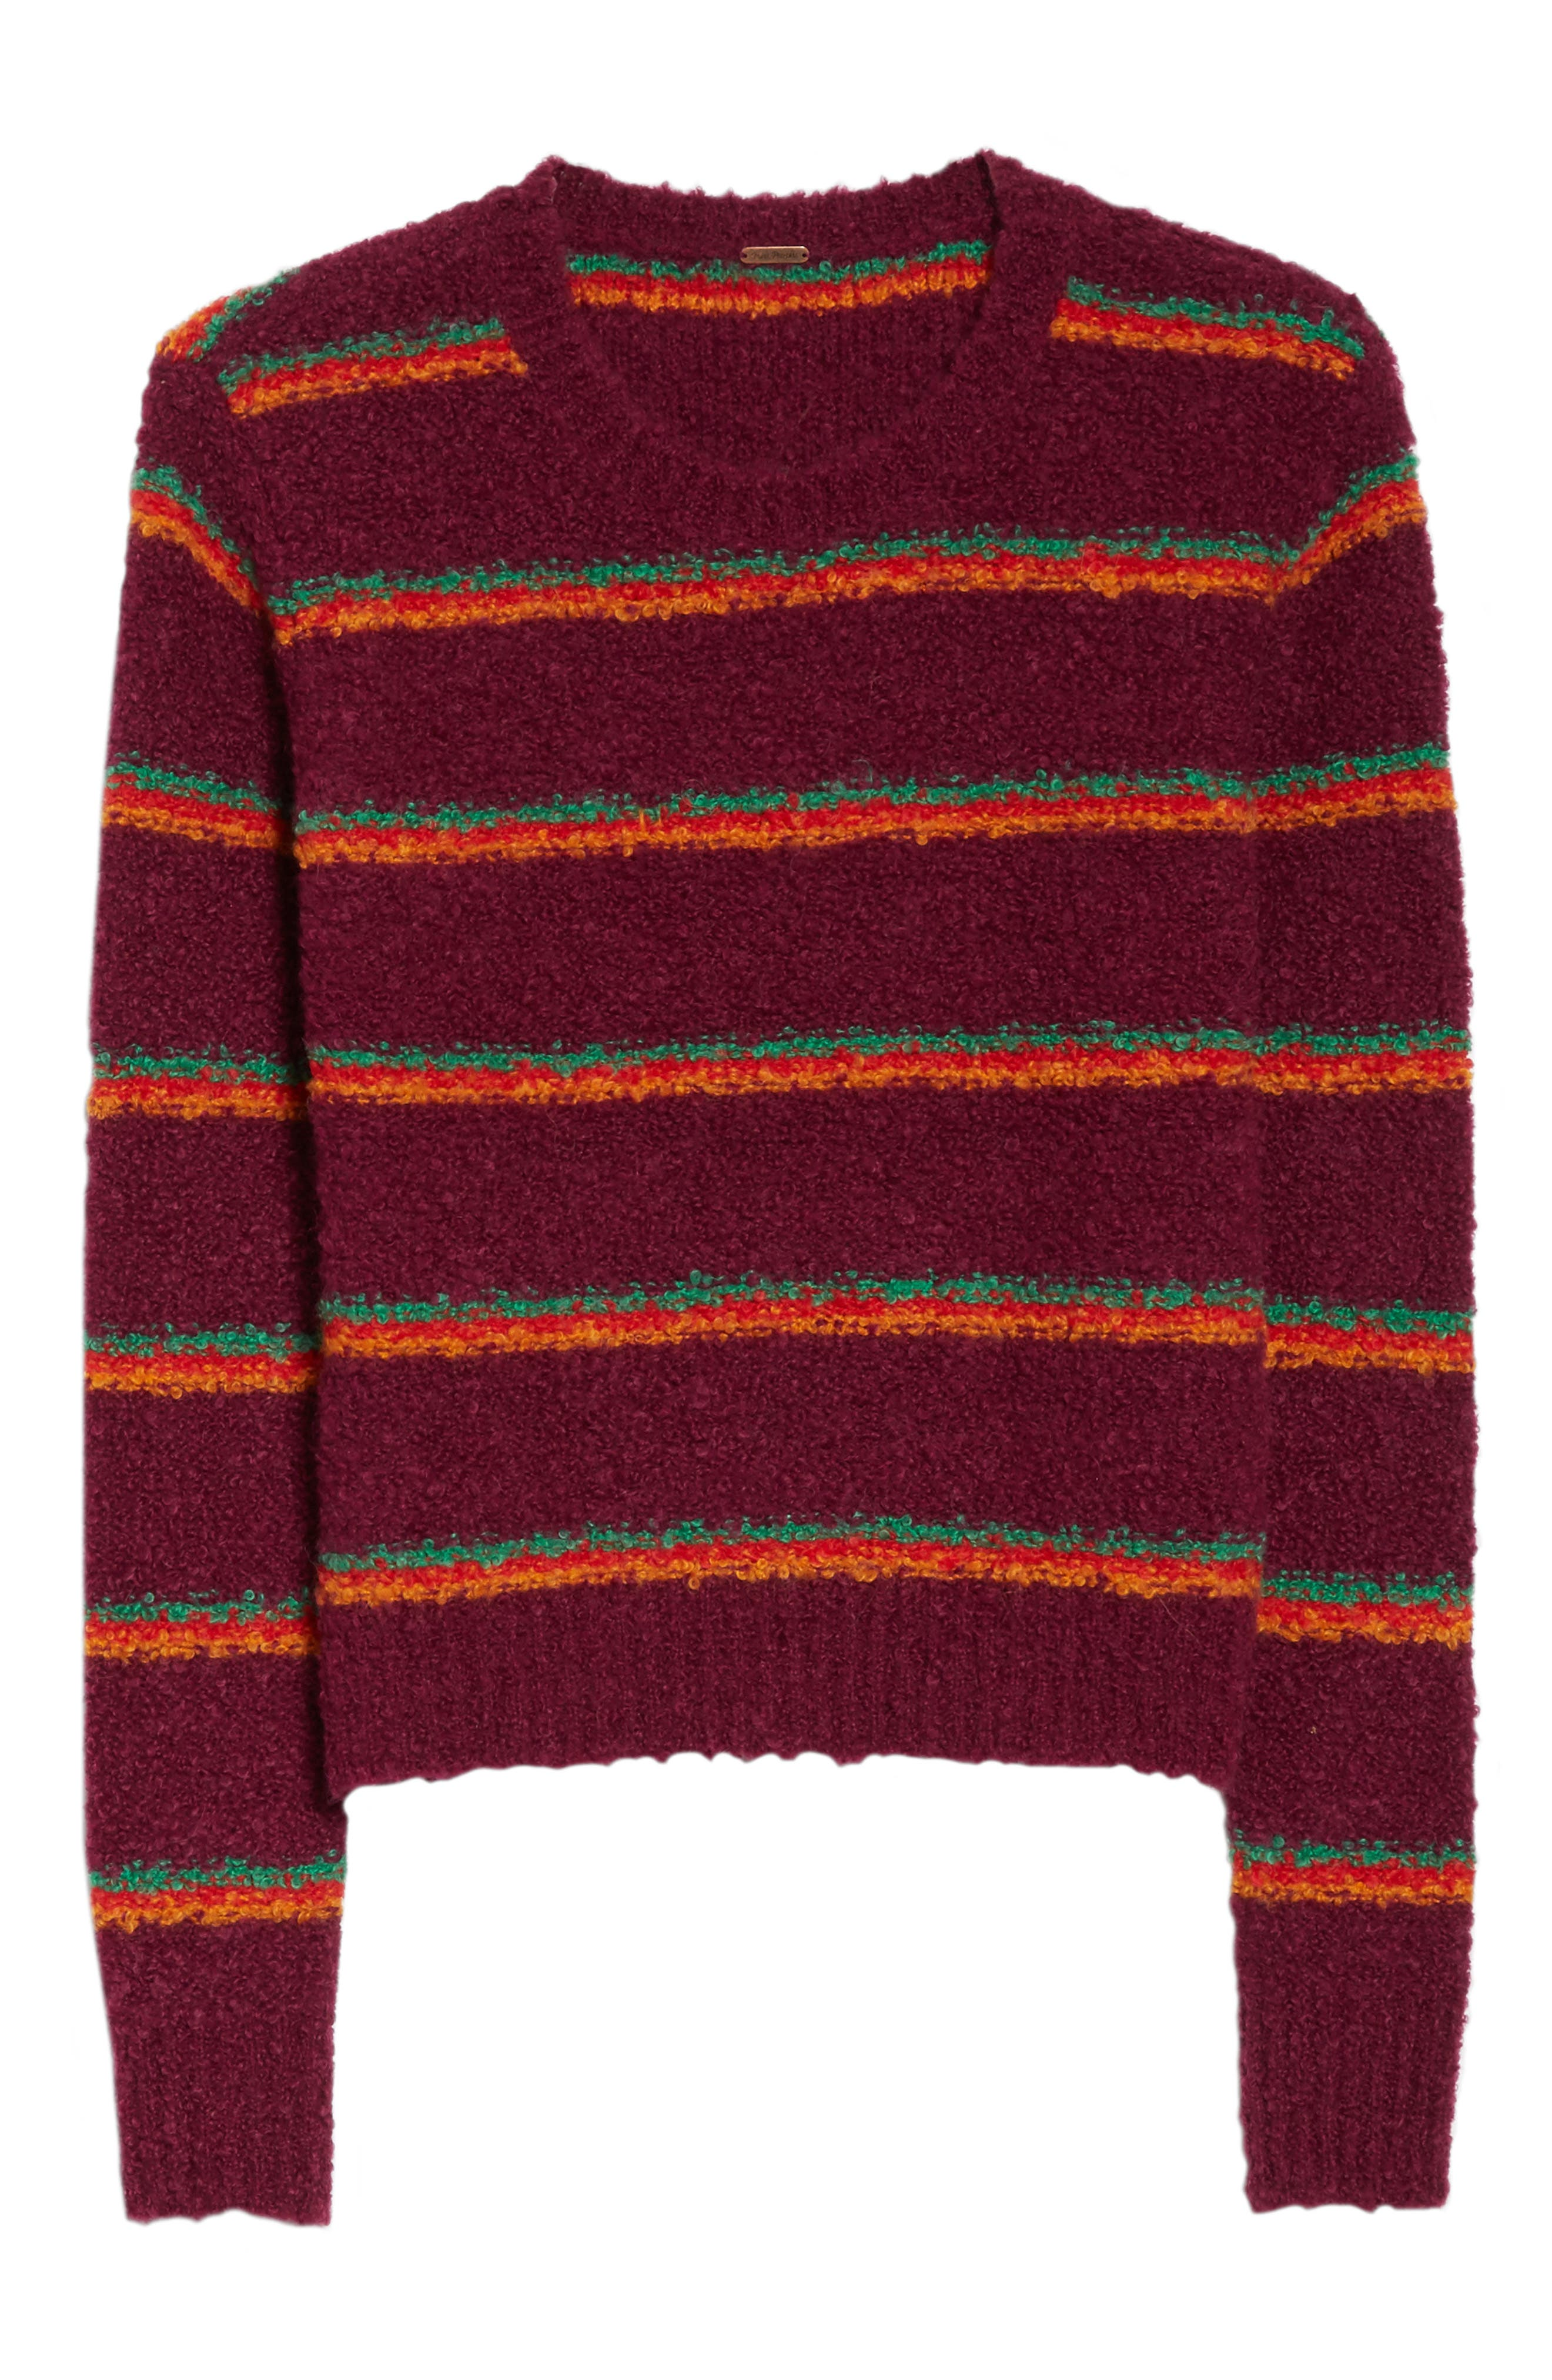 Best Day Ever Sweater,                             Alternate thumbnail 18, color,